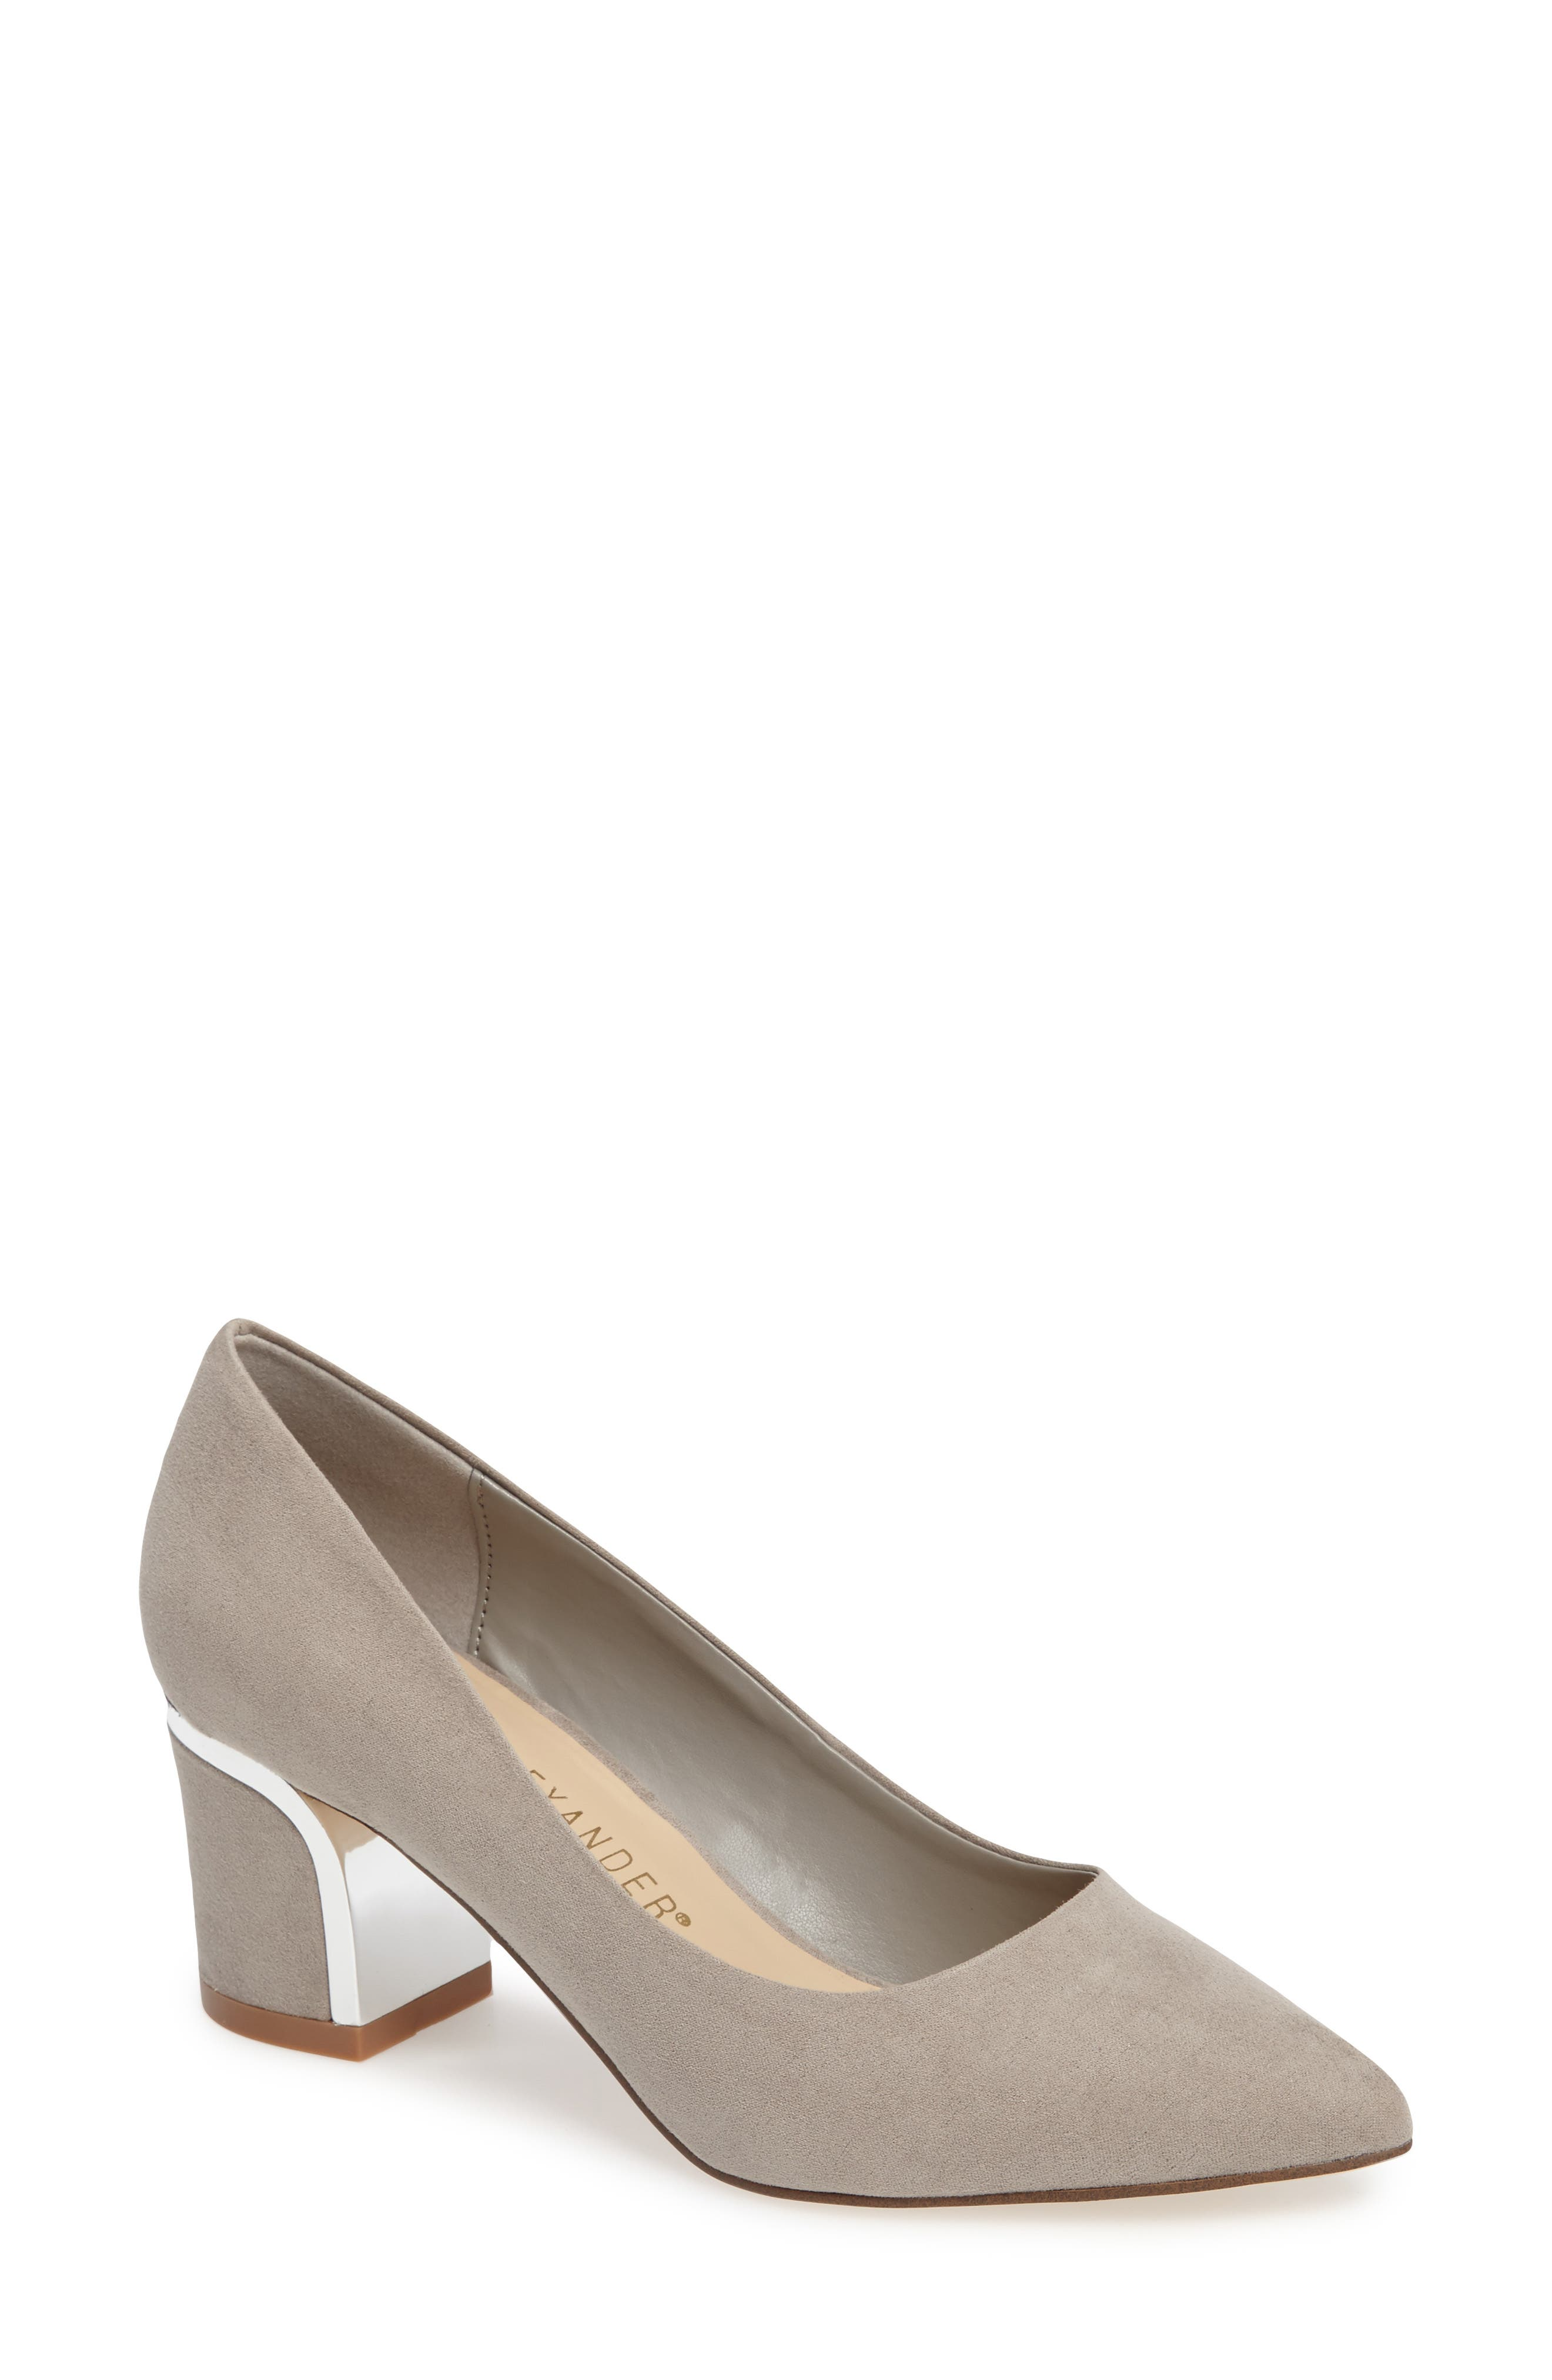 Athena Alexander Zabel Embellished Block Heel Pump (Women)